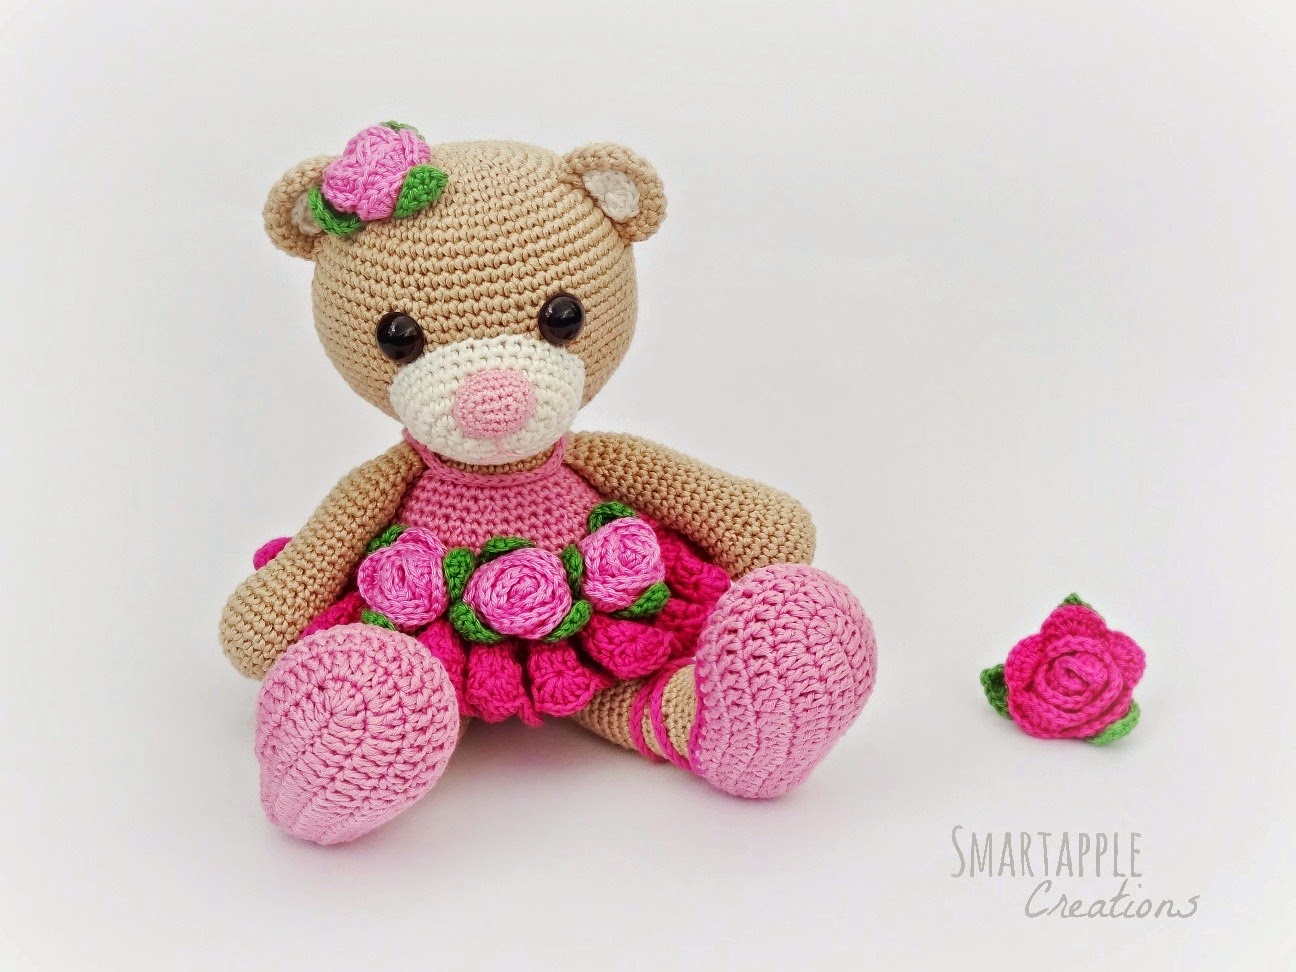 Smartapple Creations - amigurumi and crochet: Bibi the ...